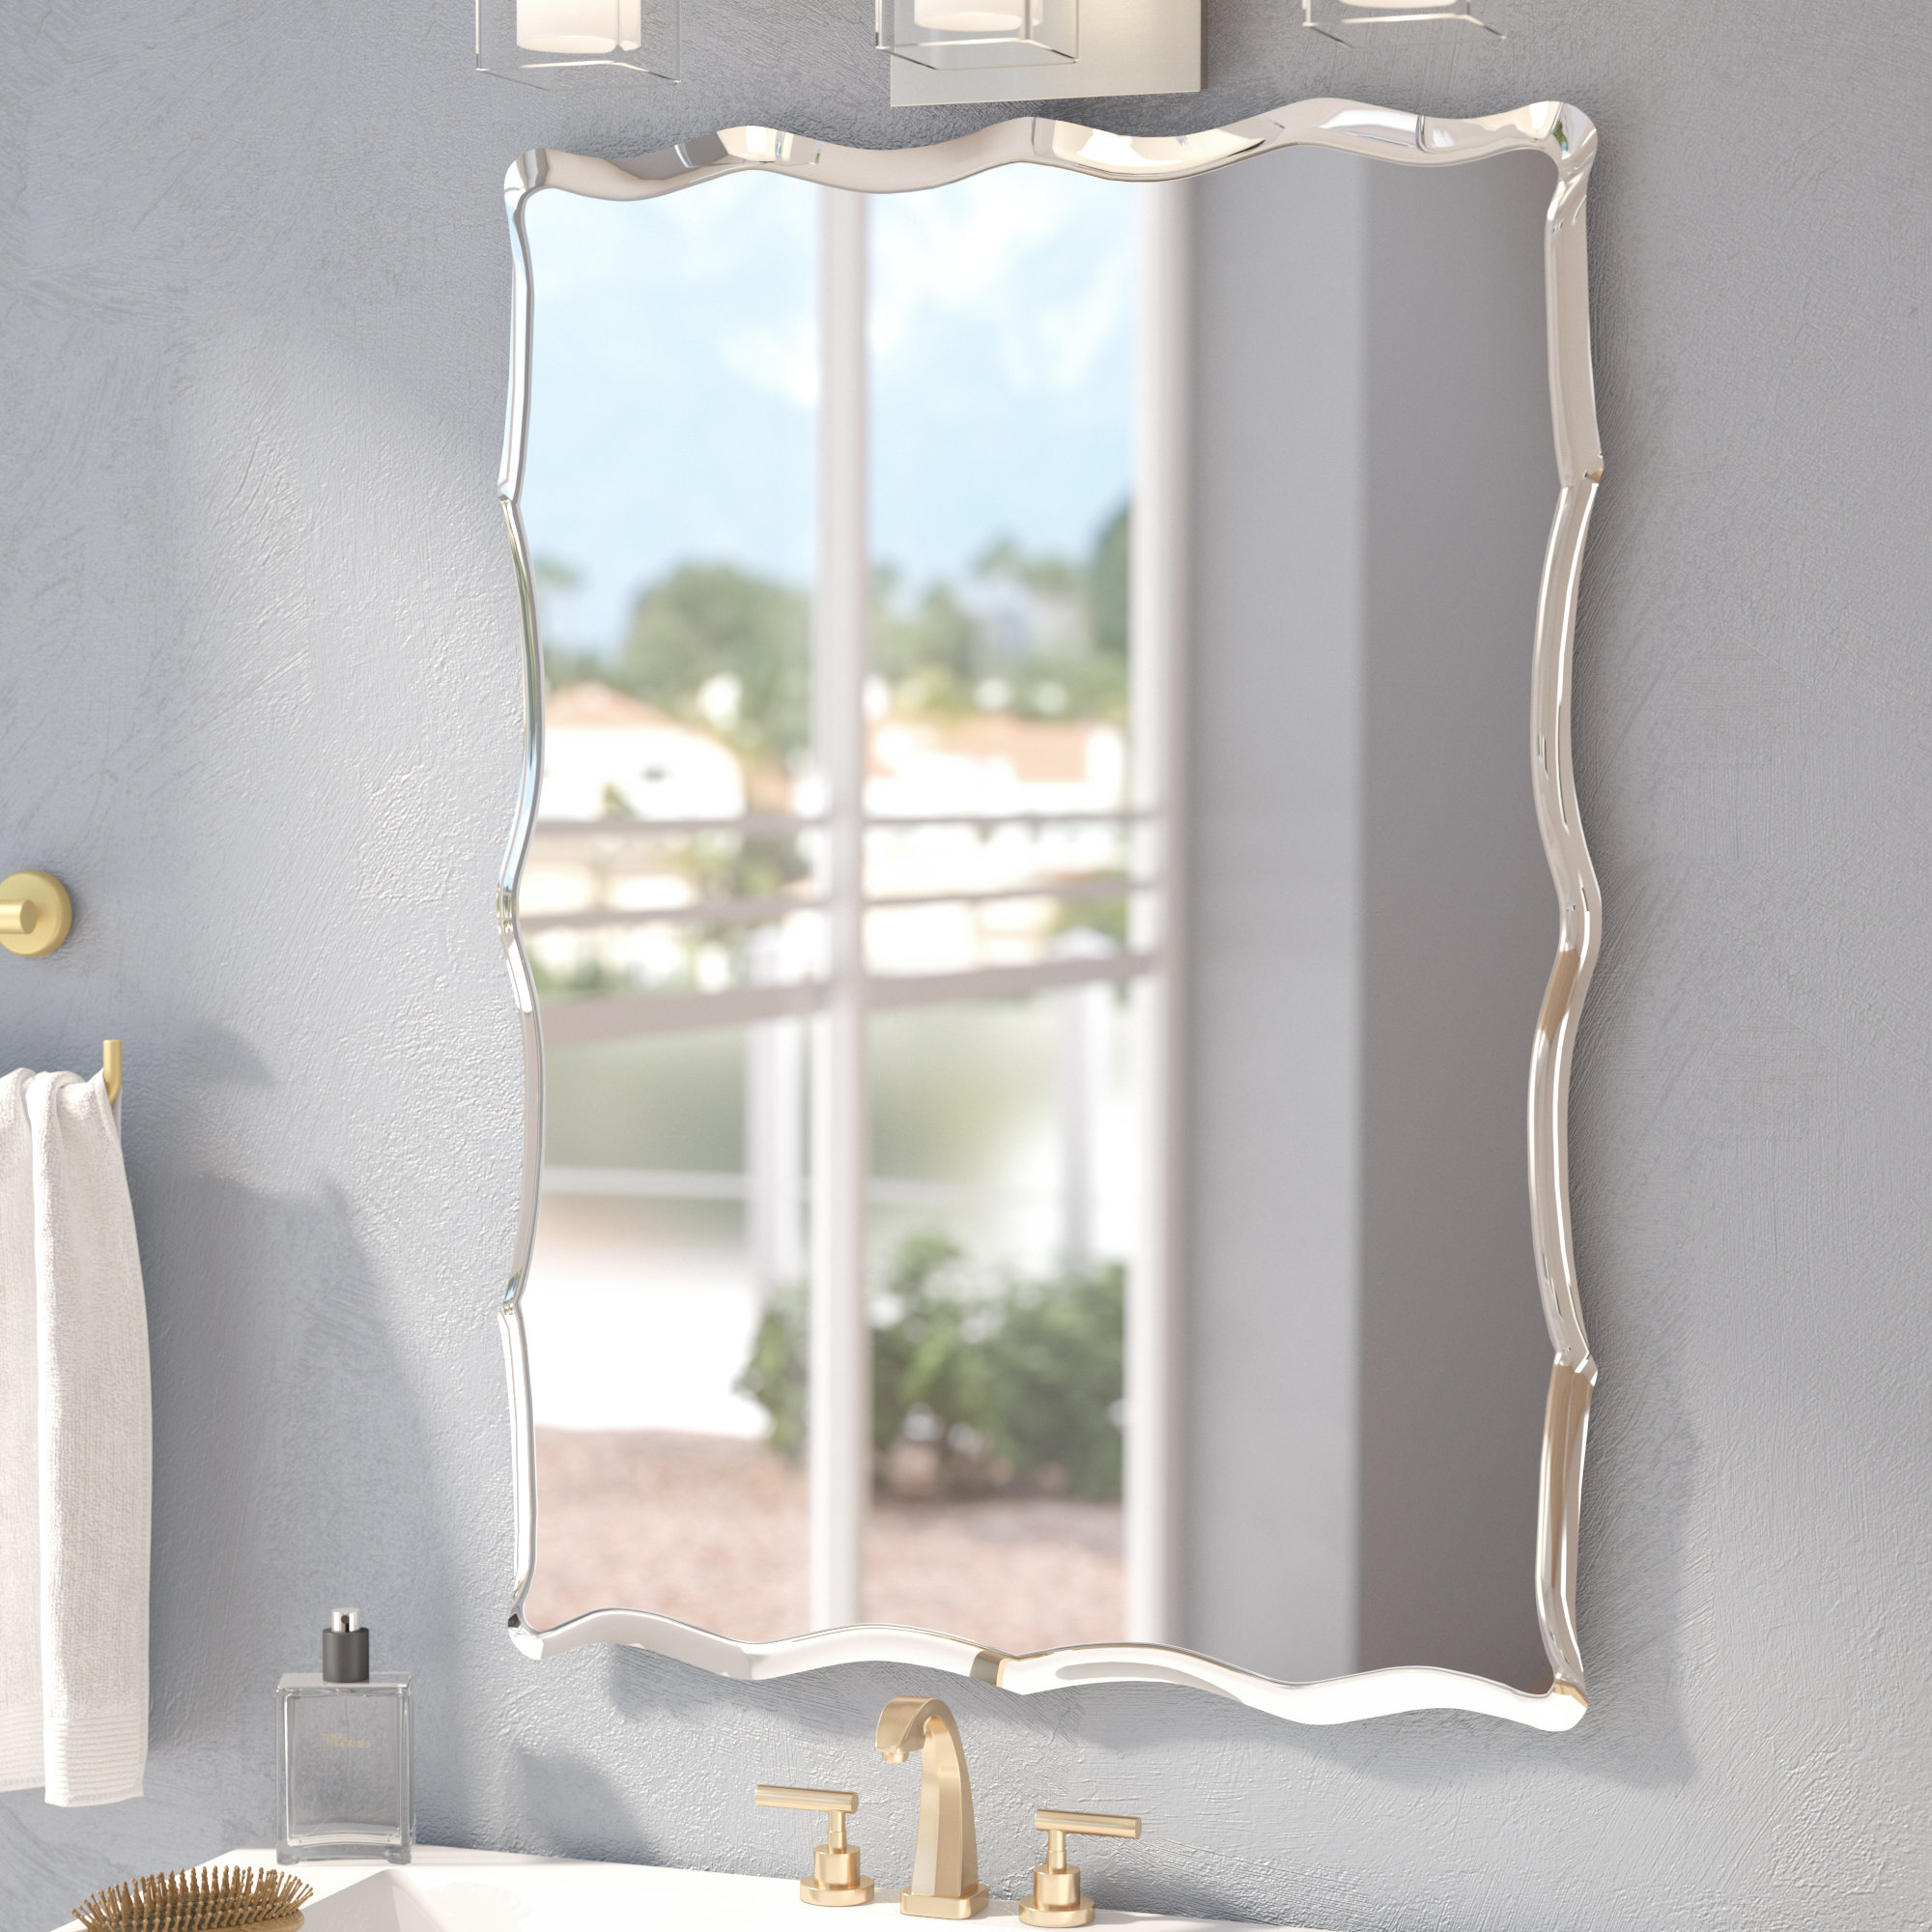 Wade Logan Estefania Frameless Wall Mirror & Reviews | Wayfair regarding Estefania Frameless Wall Mirrors (Image 28 of 30)